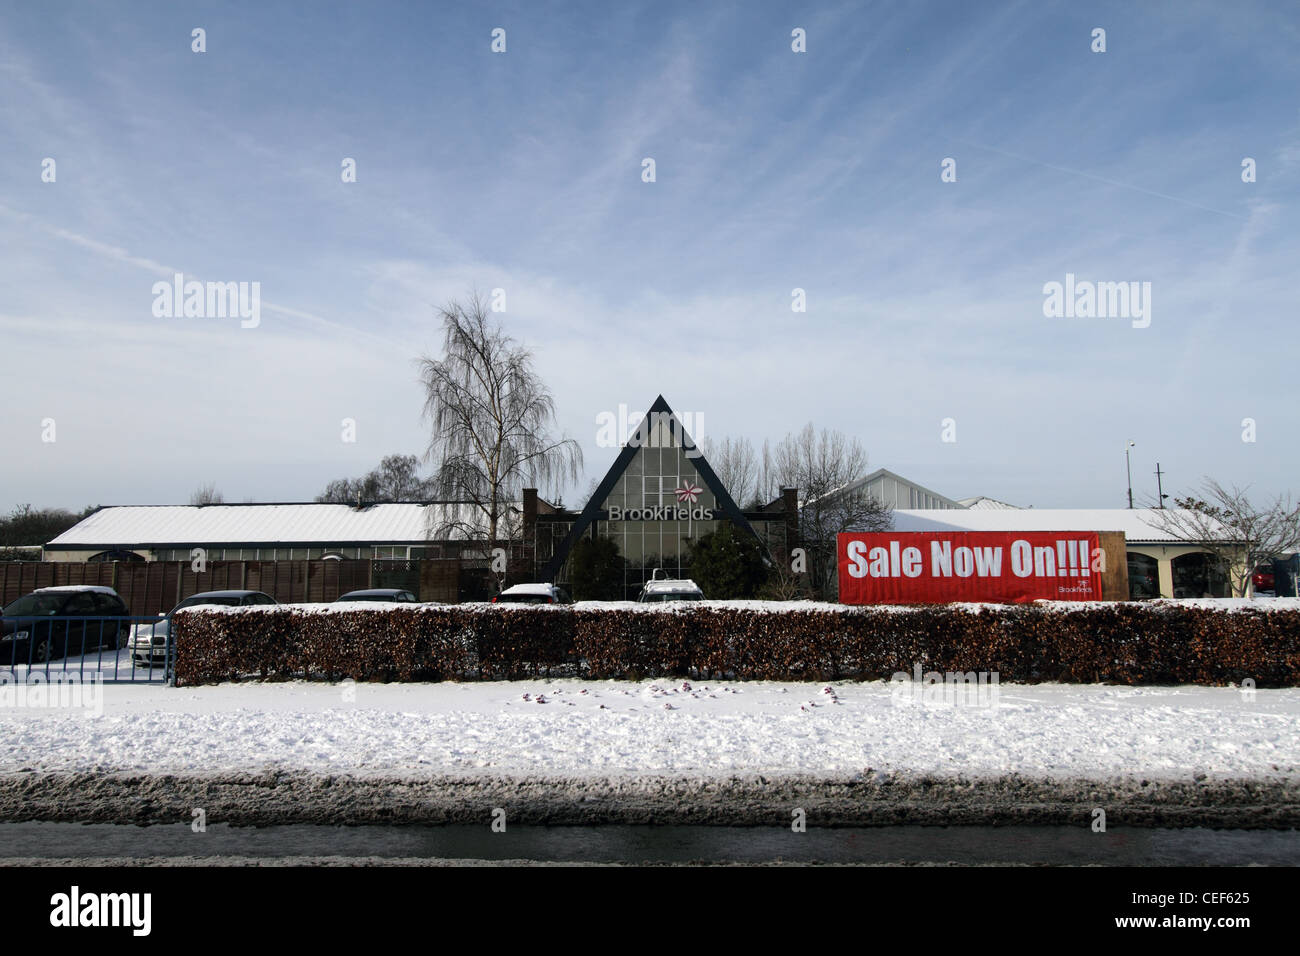 Brookfield's Garden Centre as seen from the main road during the snow - sale now on - Stock Image